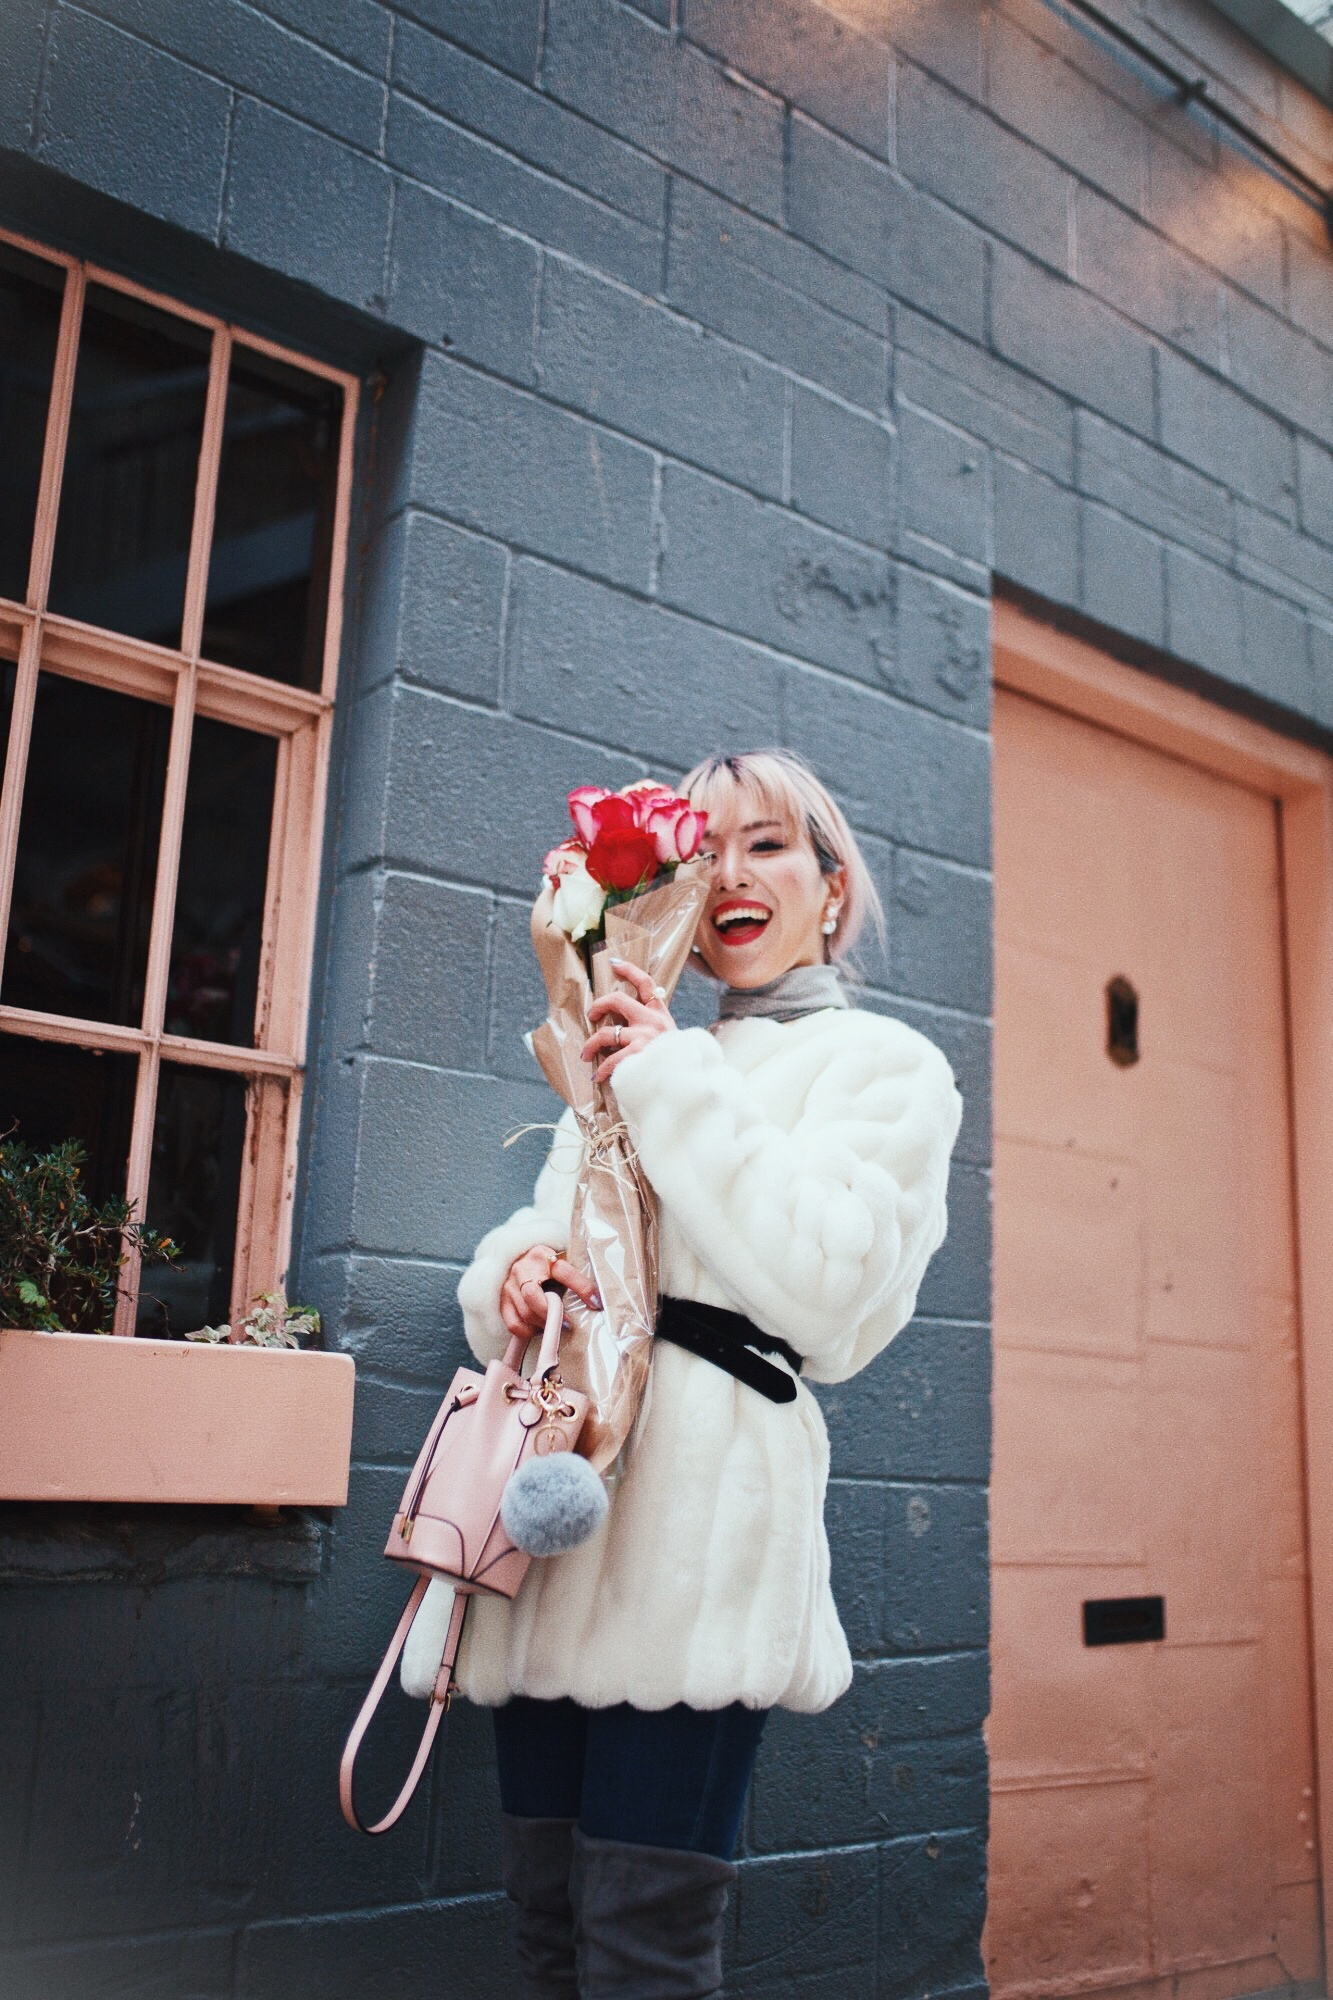 H&M Gray Turtleneck Sweater-ASOS high waisted skinny jean-EGO Grey Over the Knee Boots-While Faux Fur Coat-Forever 21 Pearl Belt & Pink Mini Basket Bag-Chanel Ribbon Hair-Valentine's Day-Rose bouquet-Pink Hair-Japanese-Seattle Style Fashion Blogger-AikA's Love Closet 3